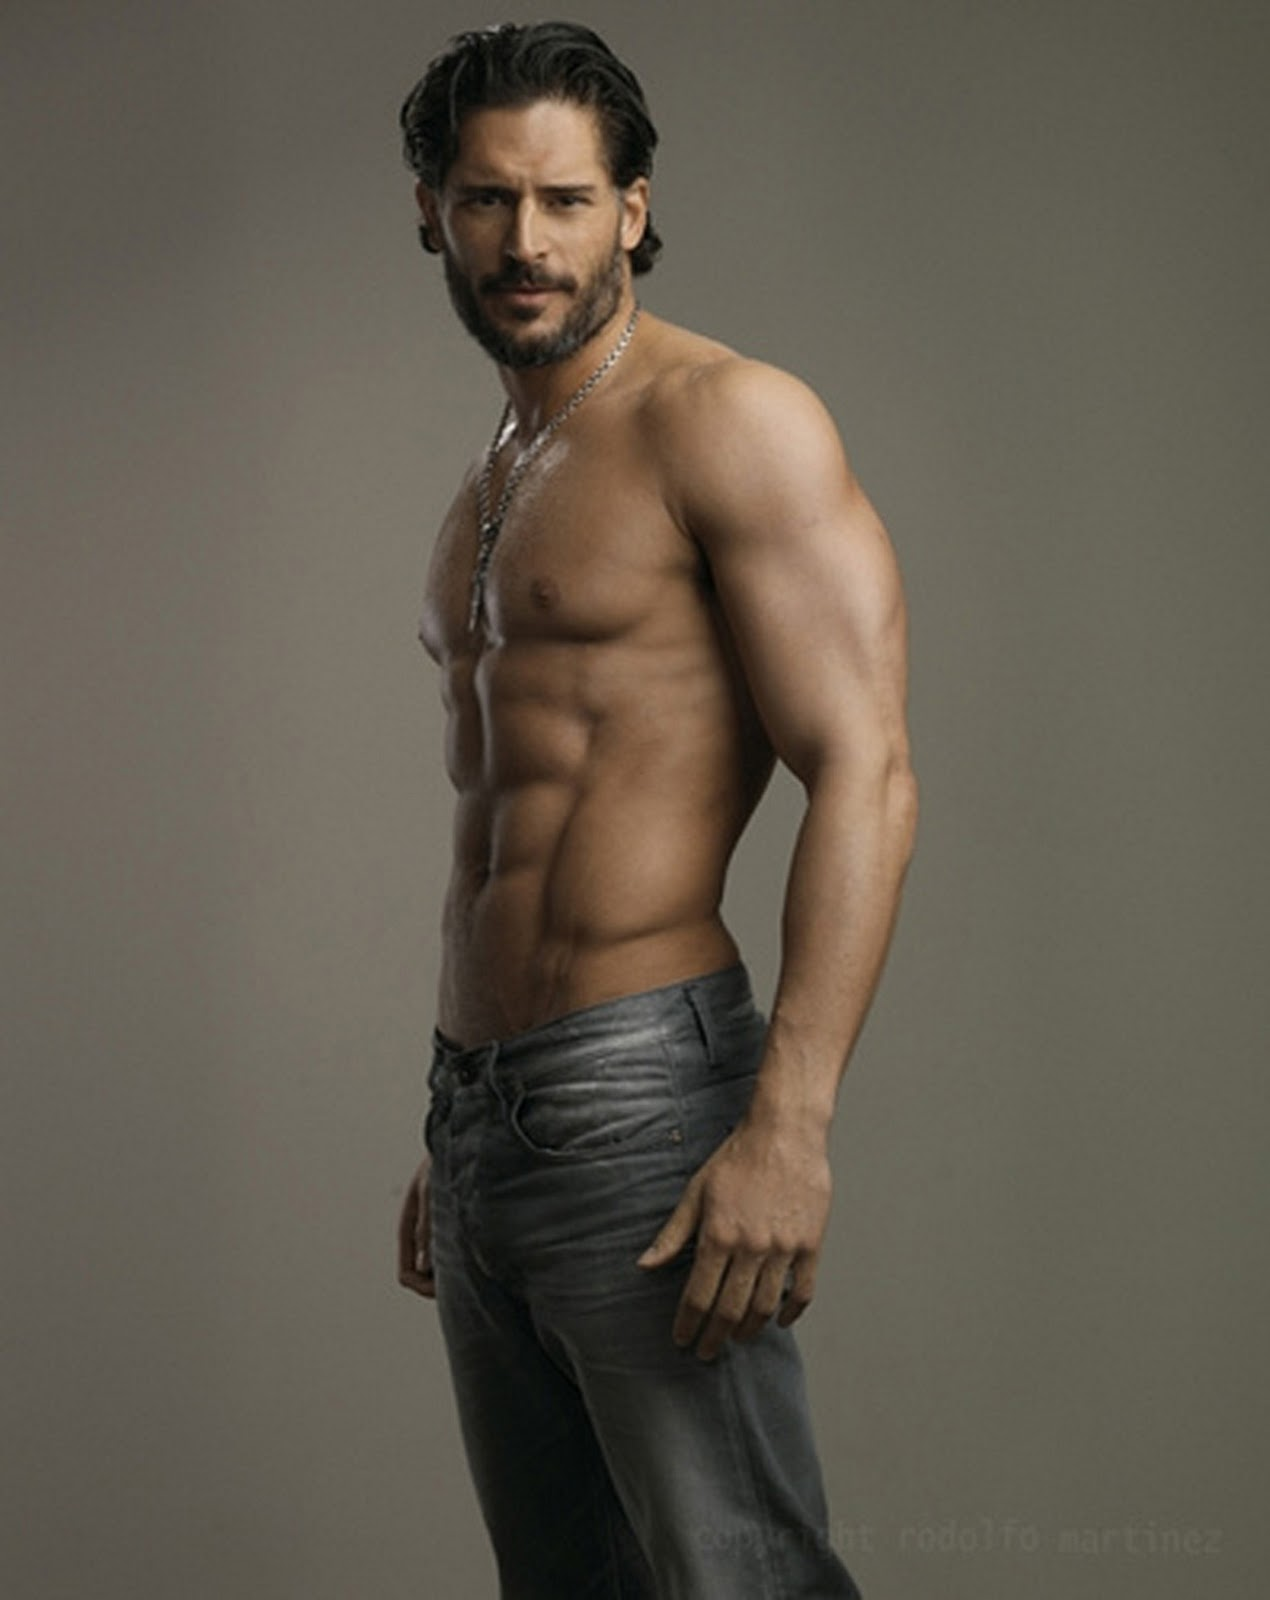 joseph michael joe manganiello was born on december 28 1976 joe